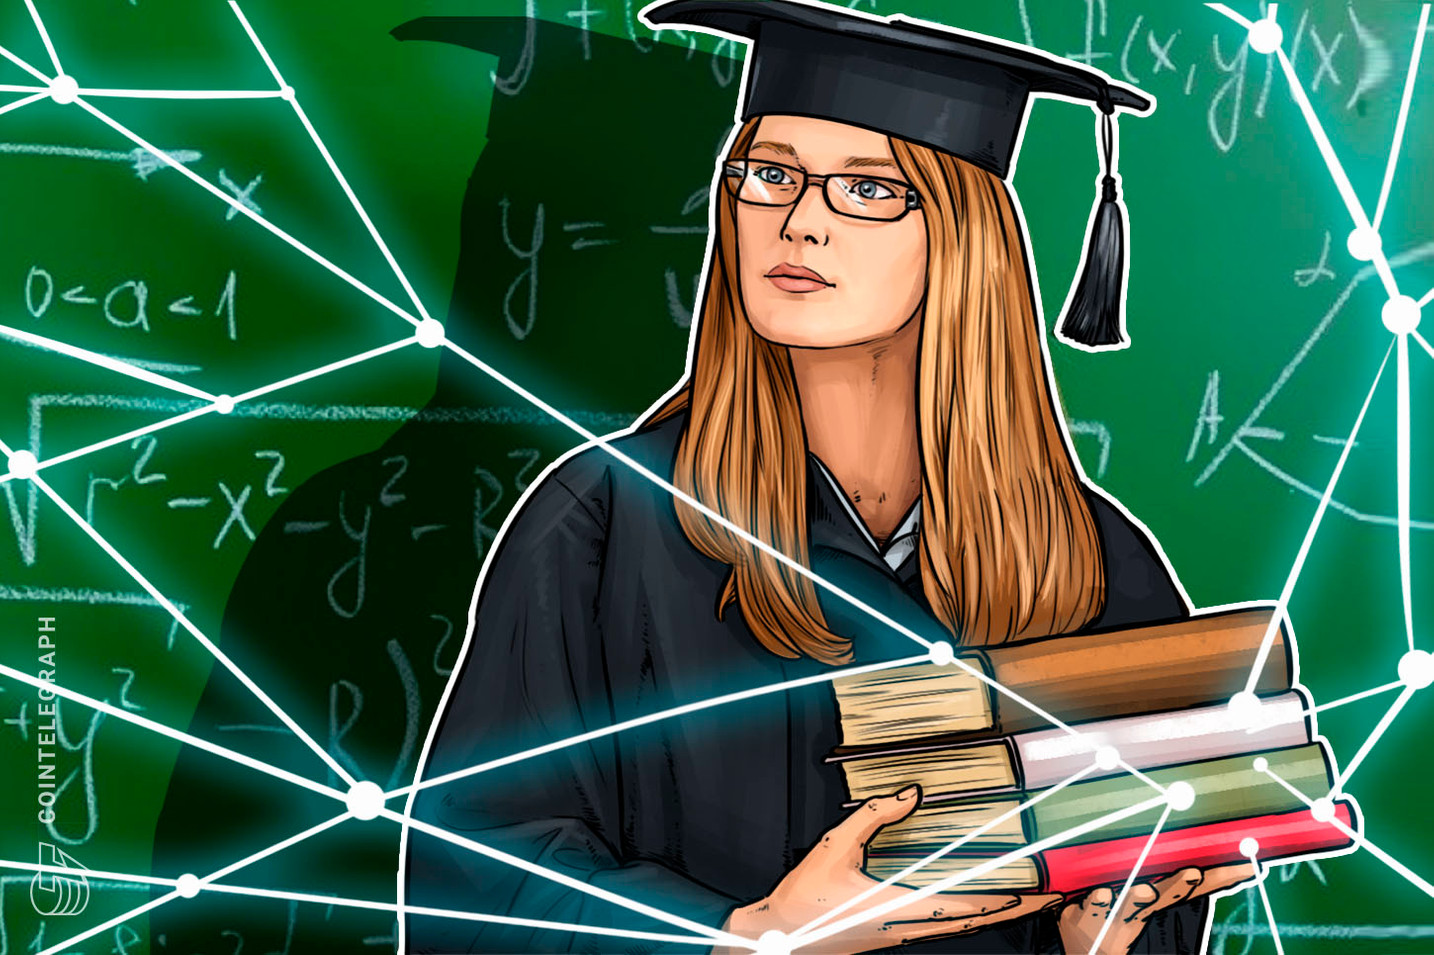 Principality of Andorra to Implement Blockchain Tech for Digitizing Academic Degrees